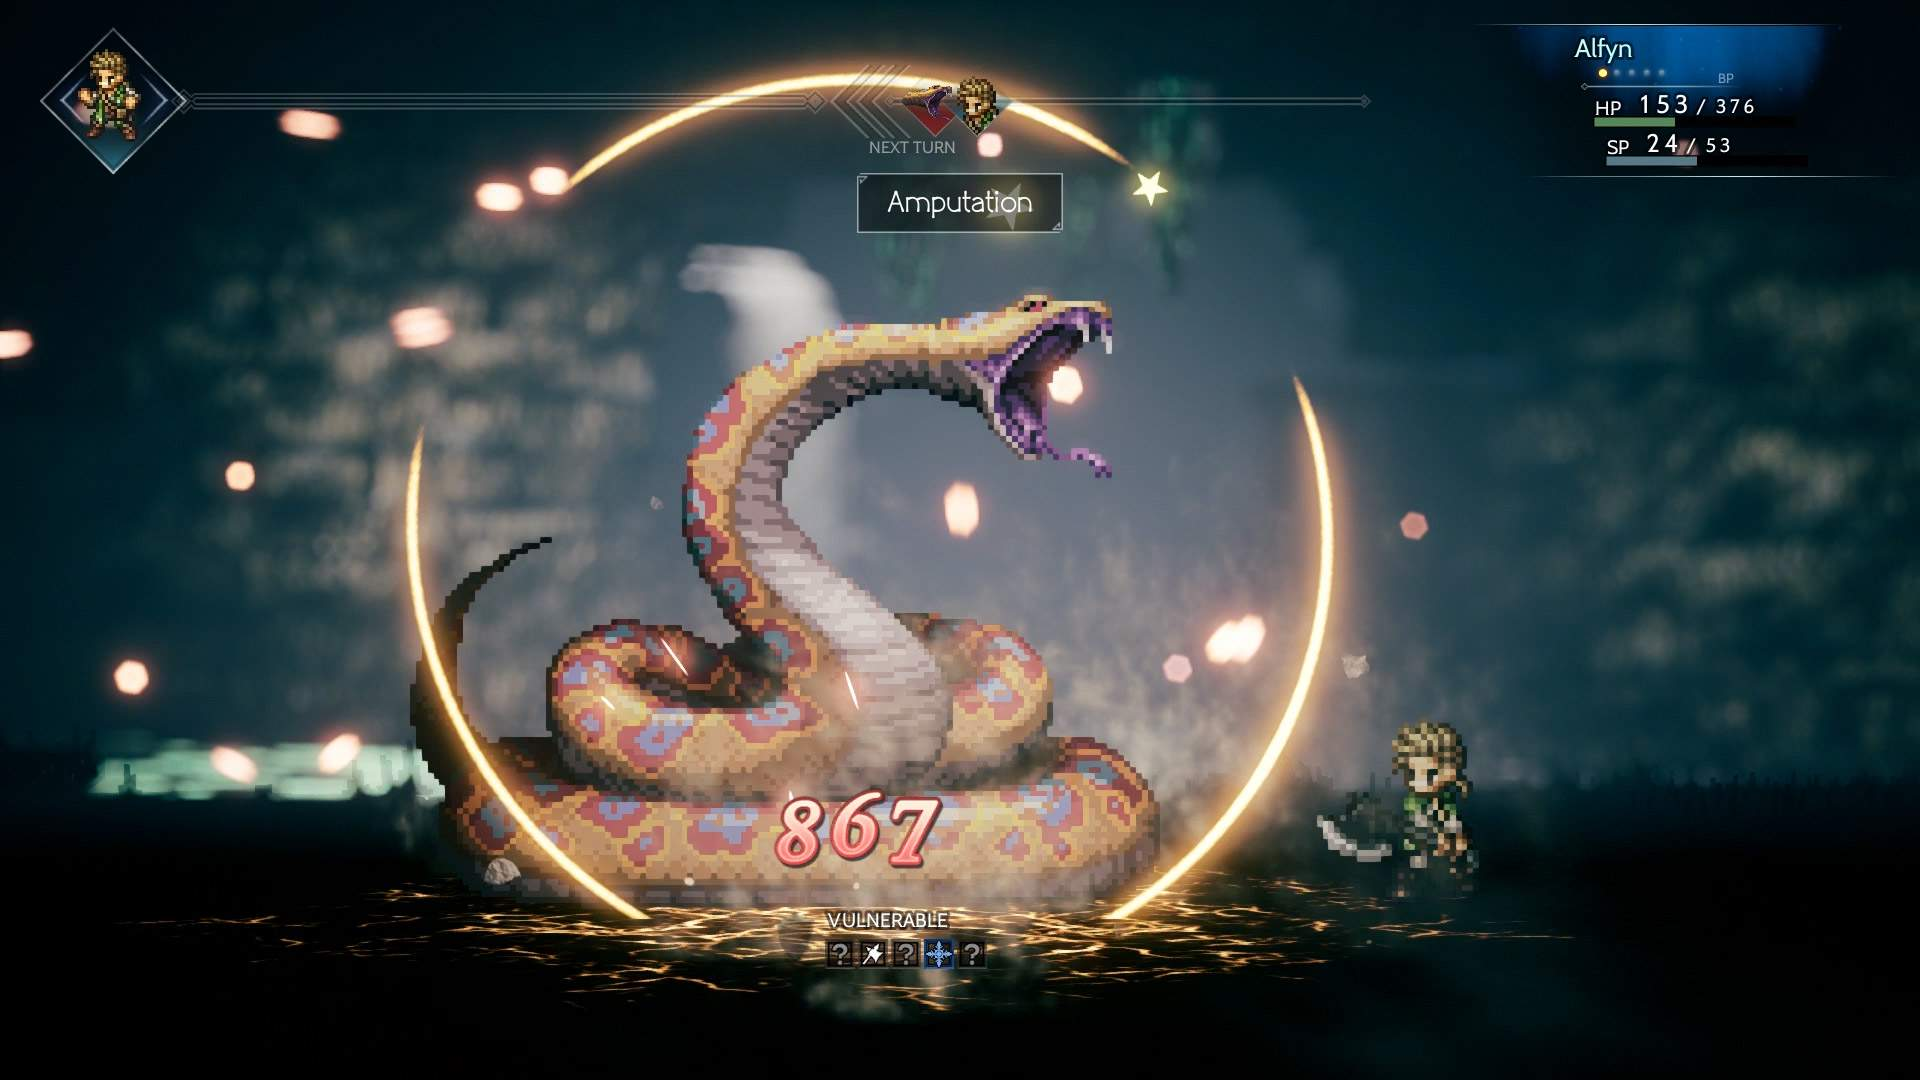 In game battle screenshot showing Alfyn using an attack on a large serpent-like monster in a dungeon